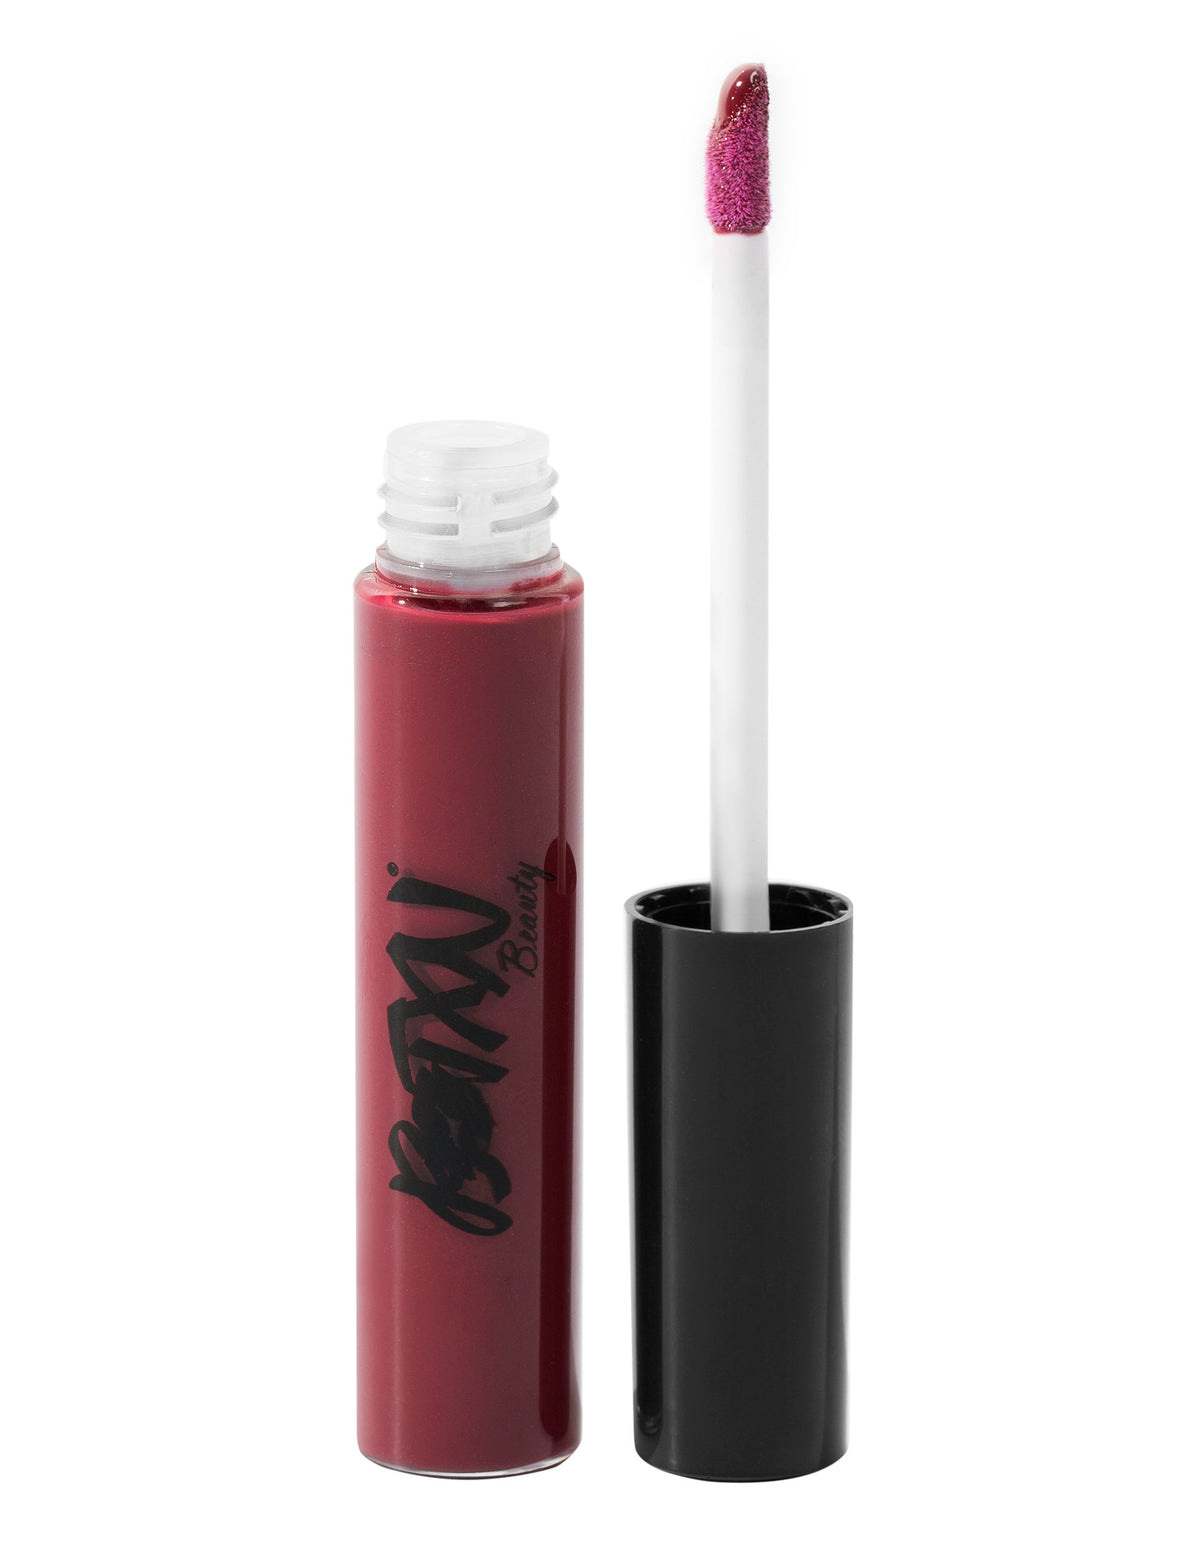 Glam Gloss - Punk